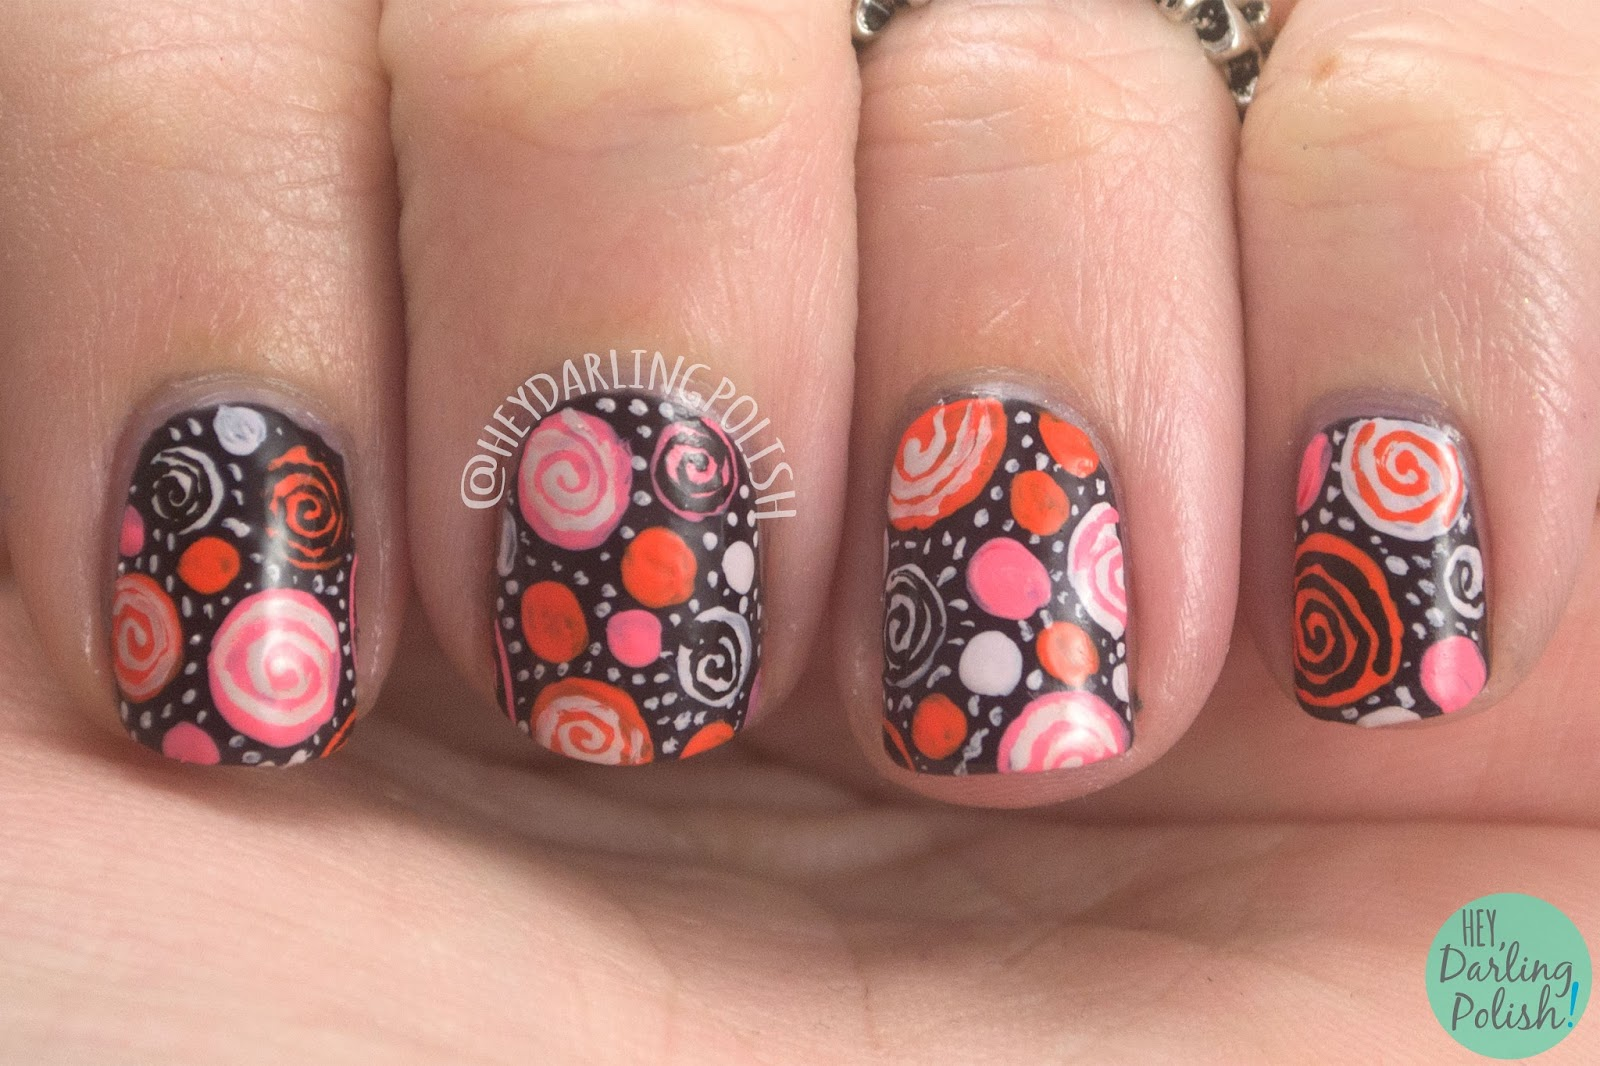 nails, nail art, nail polish, dots, polka dots, free hand, hey darling polish, the nail challenge collaborative, book, the penguin poet